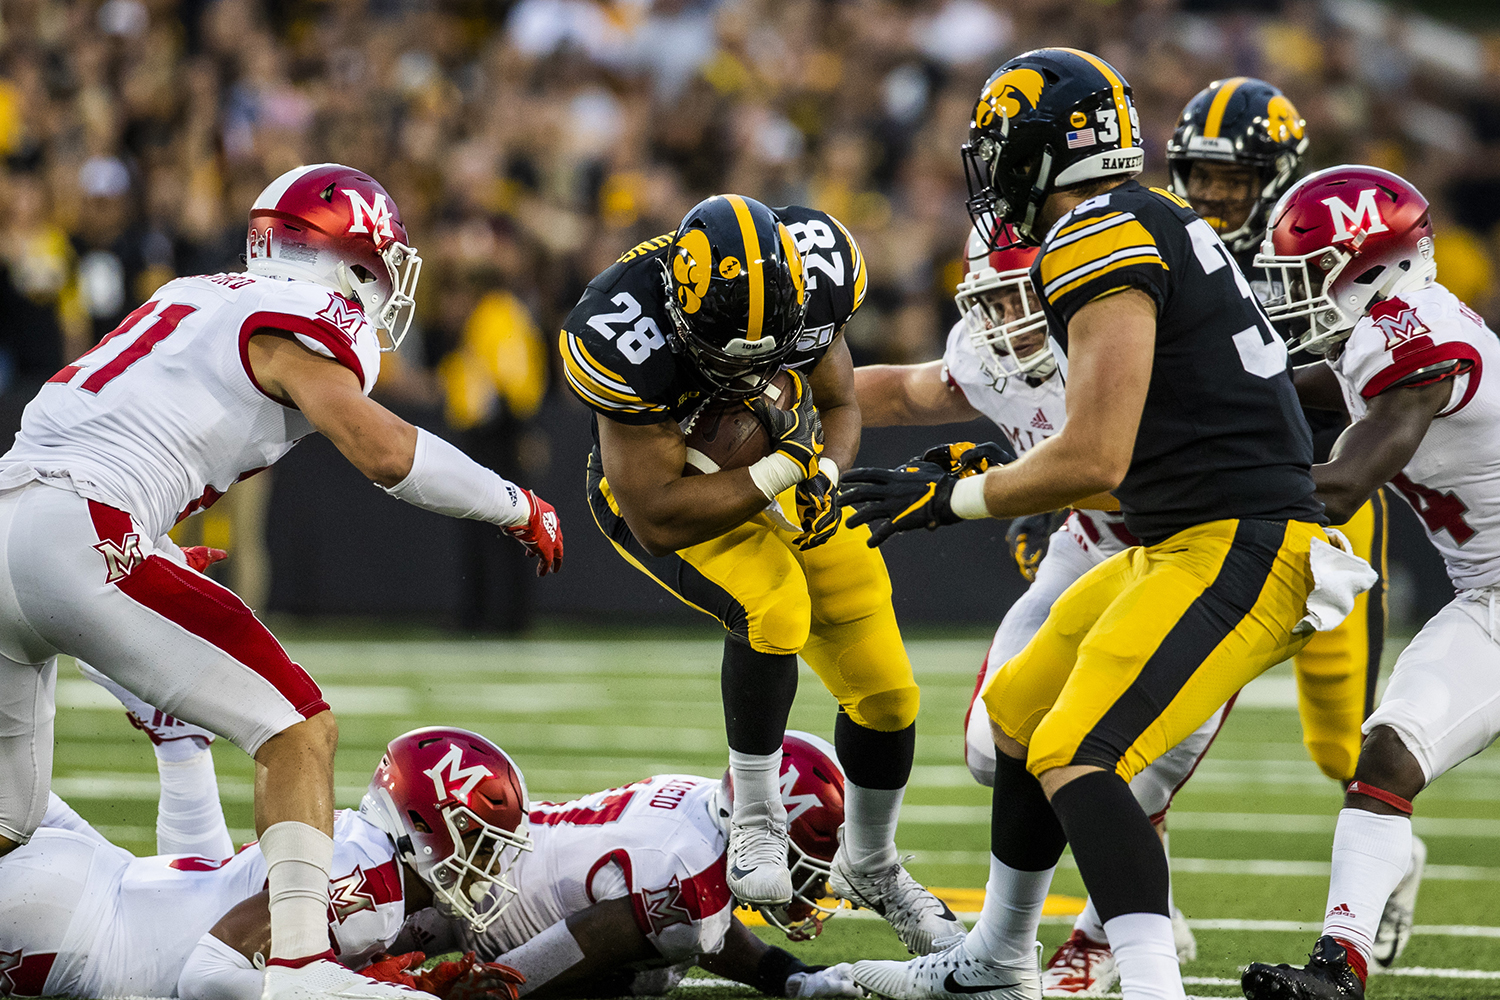 Iowa+running+back+Toren+Young+runs+the+ball+during+the+Iowa+football+game+against+Miami+%28Ohio%29+at+Kinnick+Stadium+on+Saturday%2C+August+31%2C+2019.+The+Hawkeyes+defeated+the+Redhawks+38-14.